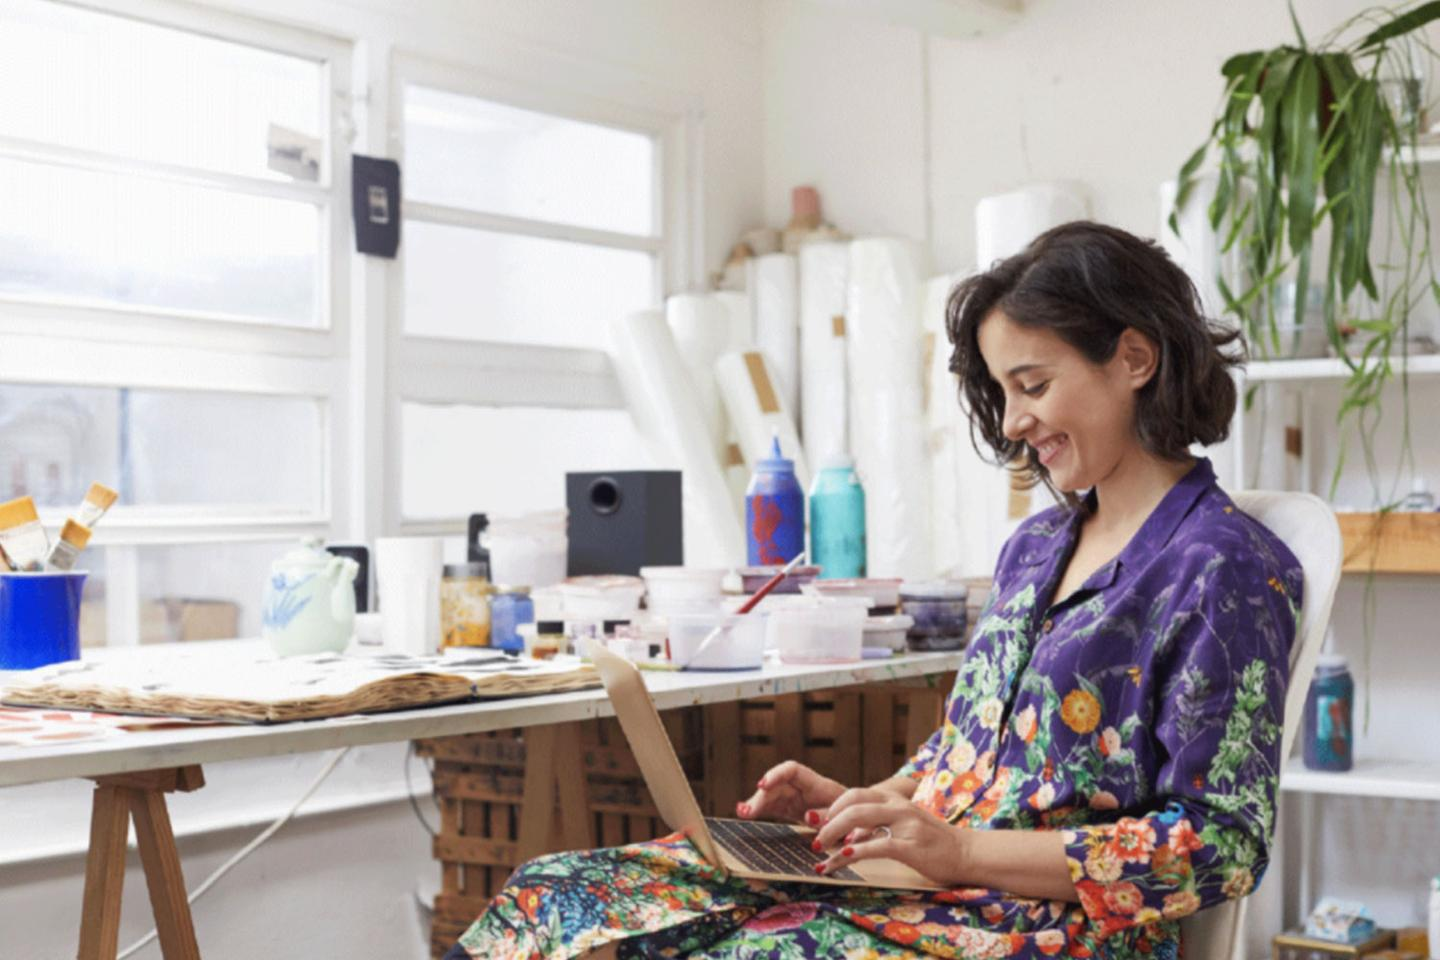 Woman in a colorful shirt happily working on her laptop